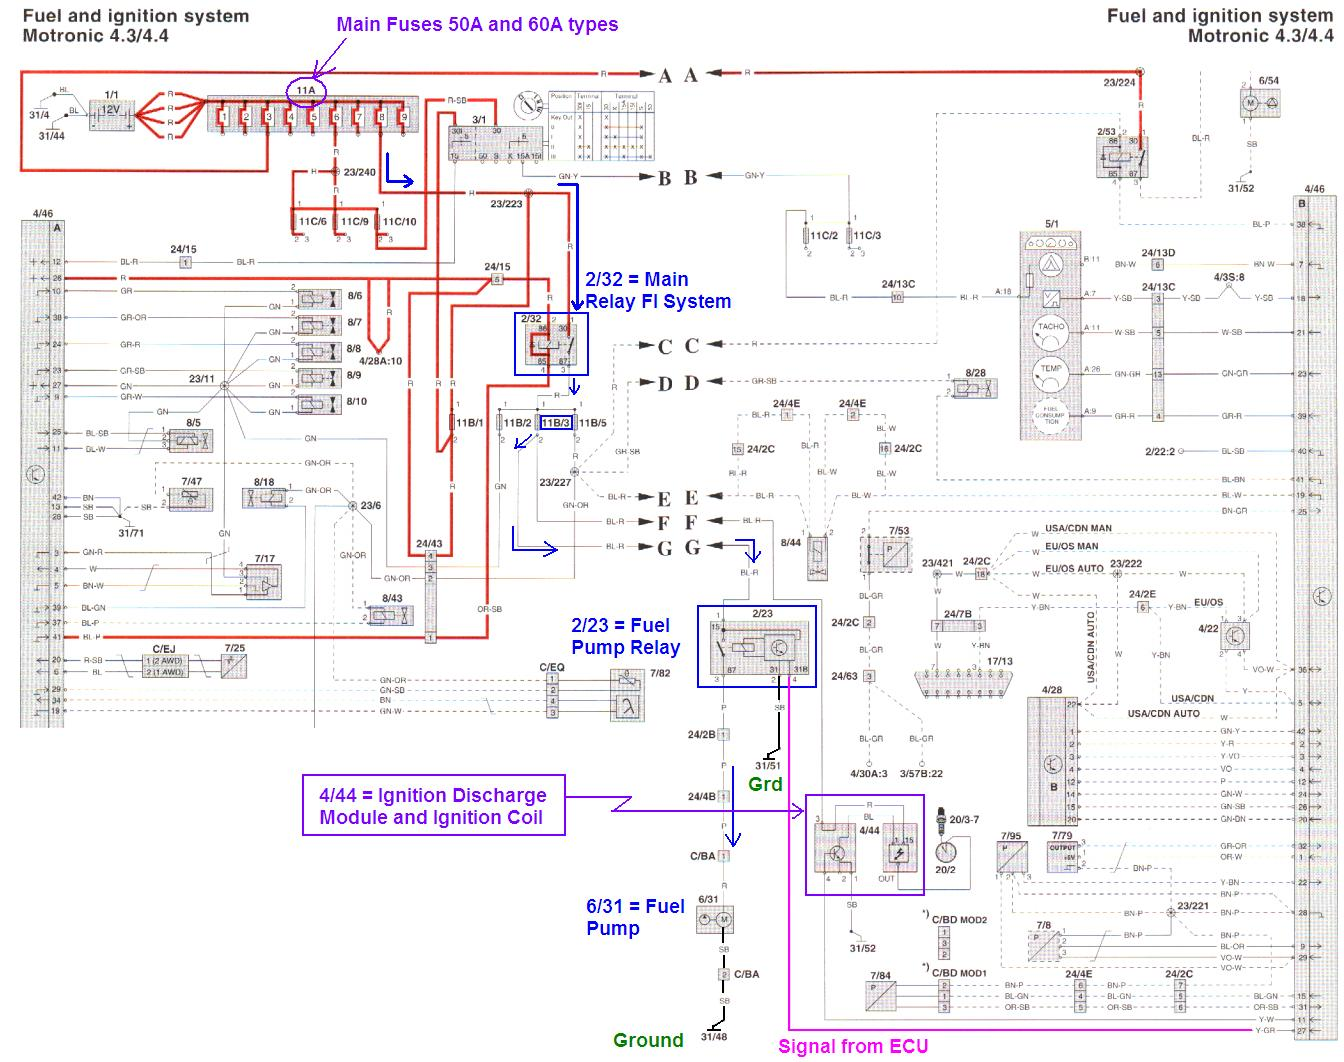 2001 Volvo V70 Fuel Pump T5 Wiring Diagram | Wiring Liry on volvo v70 rear suspension, volvo v70 starter, volvo v70 power, volvo v70 vacuum diagram, volvo v70 schematics, volvo v70 distributor, volvo amazon wiring diagram, volvo ignition wiring diagram, volvo t5 engine diagram, volvo s70 wiring-diagram, volvo v70 firing order, volvo v70 oil pump, volvo v70 repair, volvo 240 wiring diagram, volvo v70 battery, volvo v70 cooling, volvo v70 fuse box diagram, volvo v70 timing marks, volvo v70 thermostat, volvo v70 tailgate wiring harness,